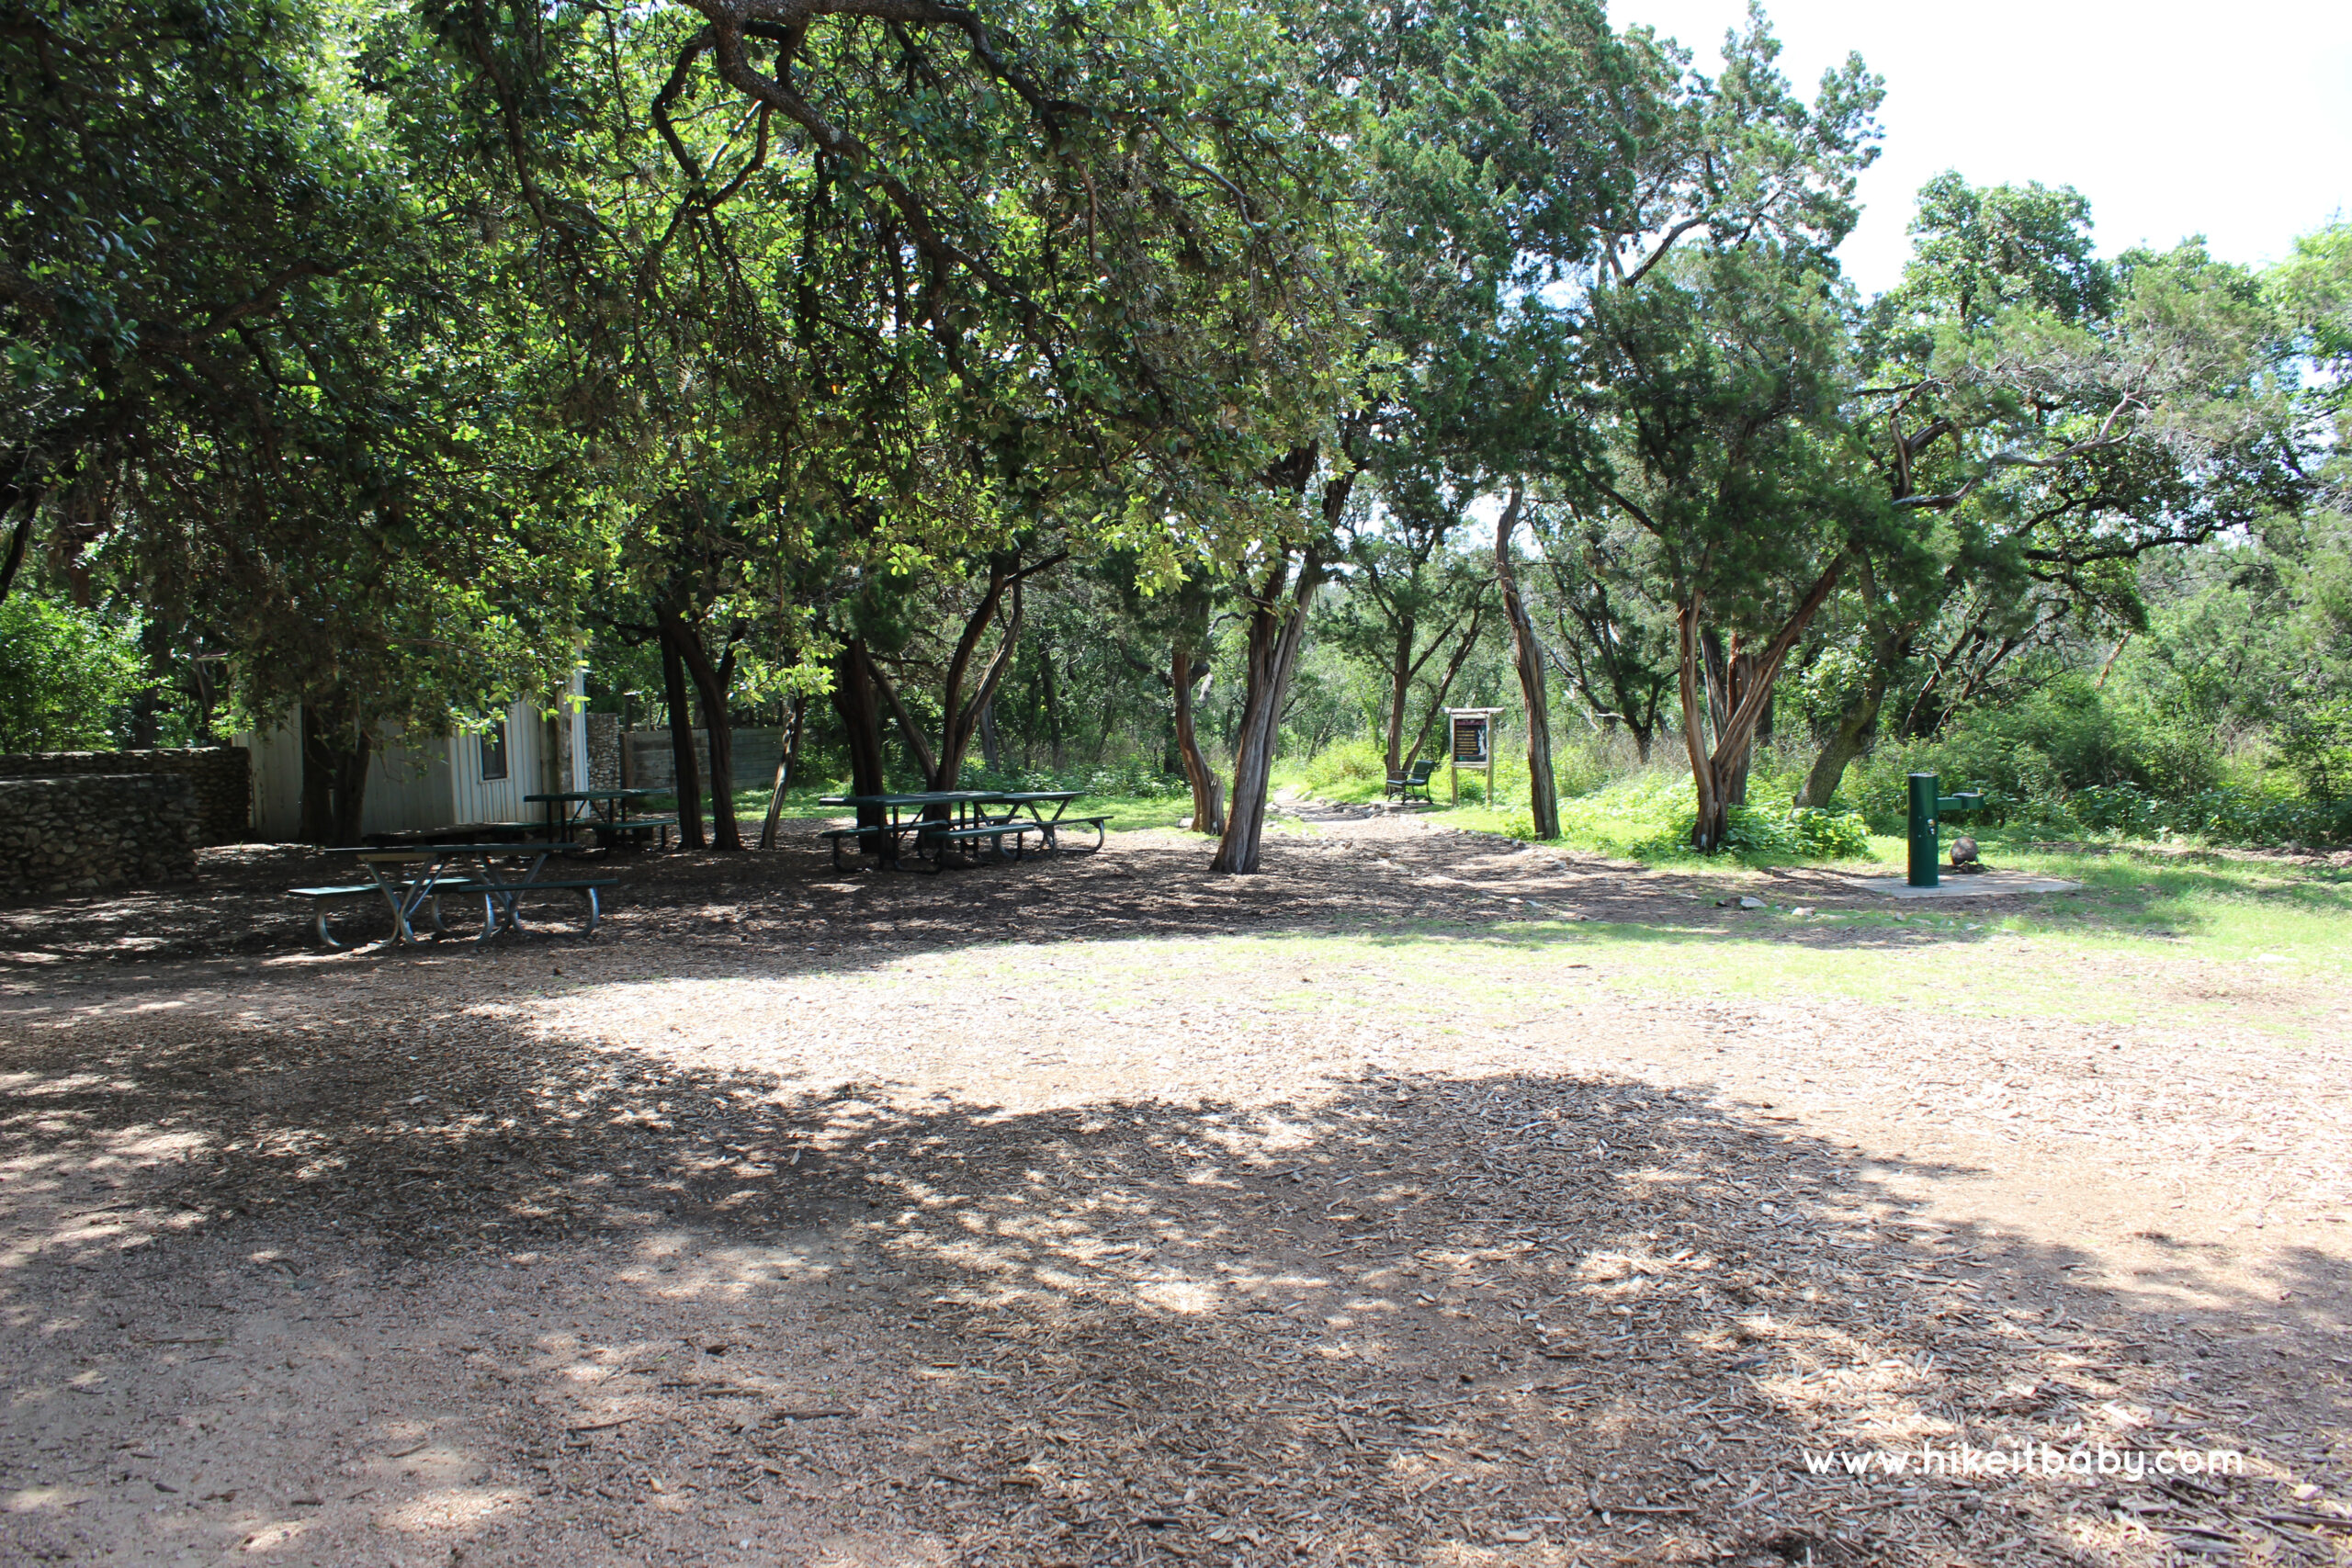 Mayfield Park Picnic Area